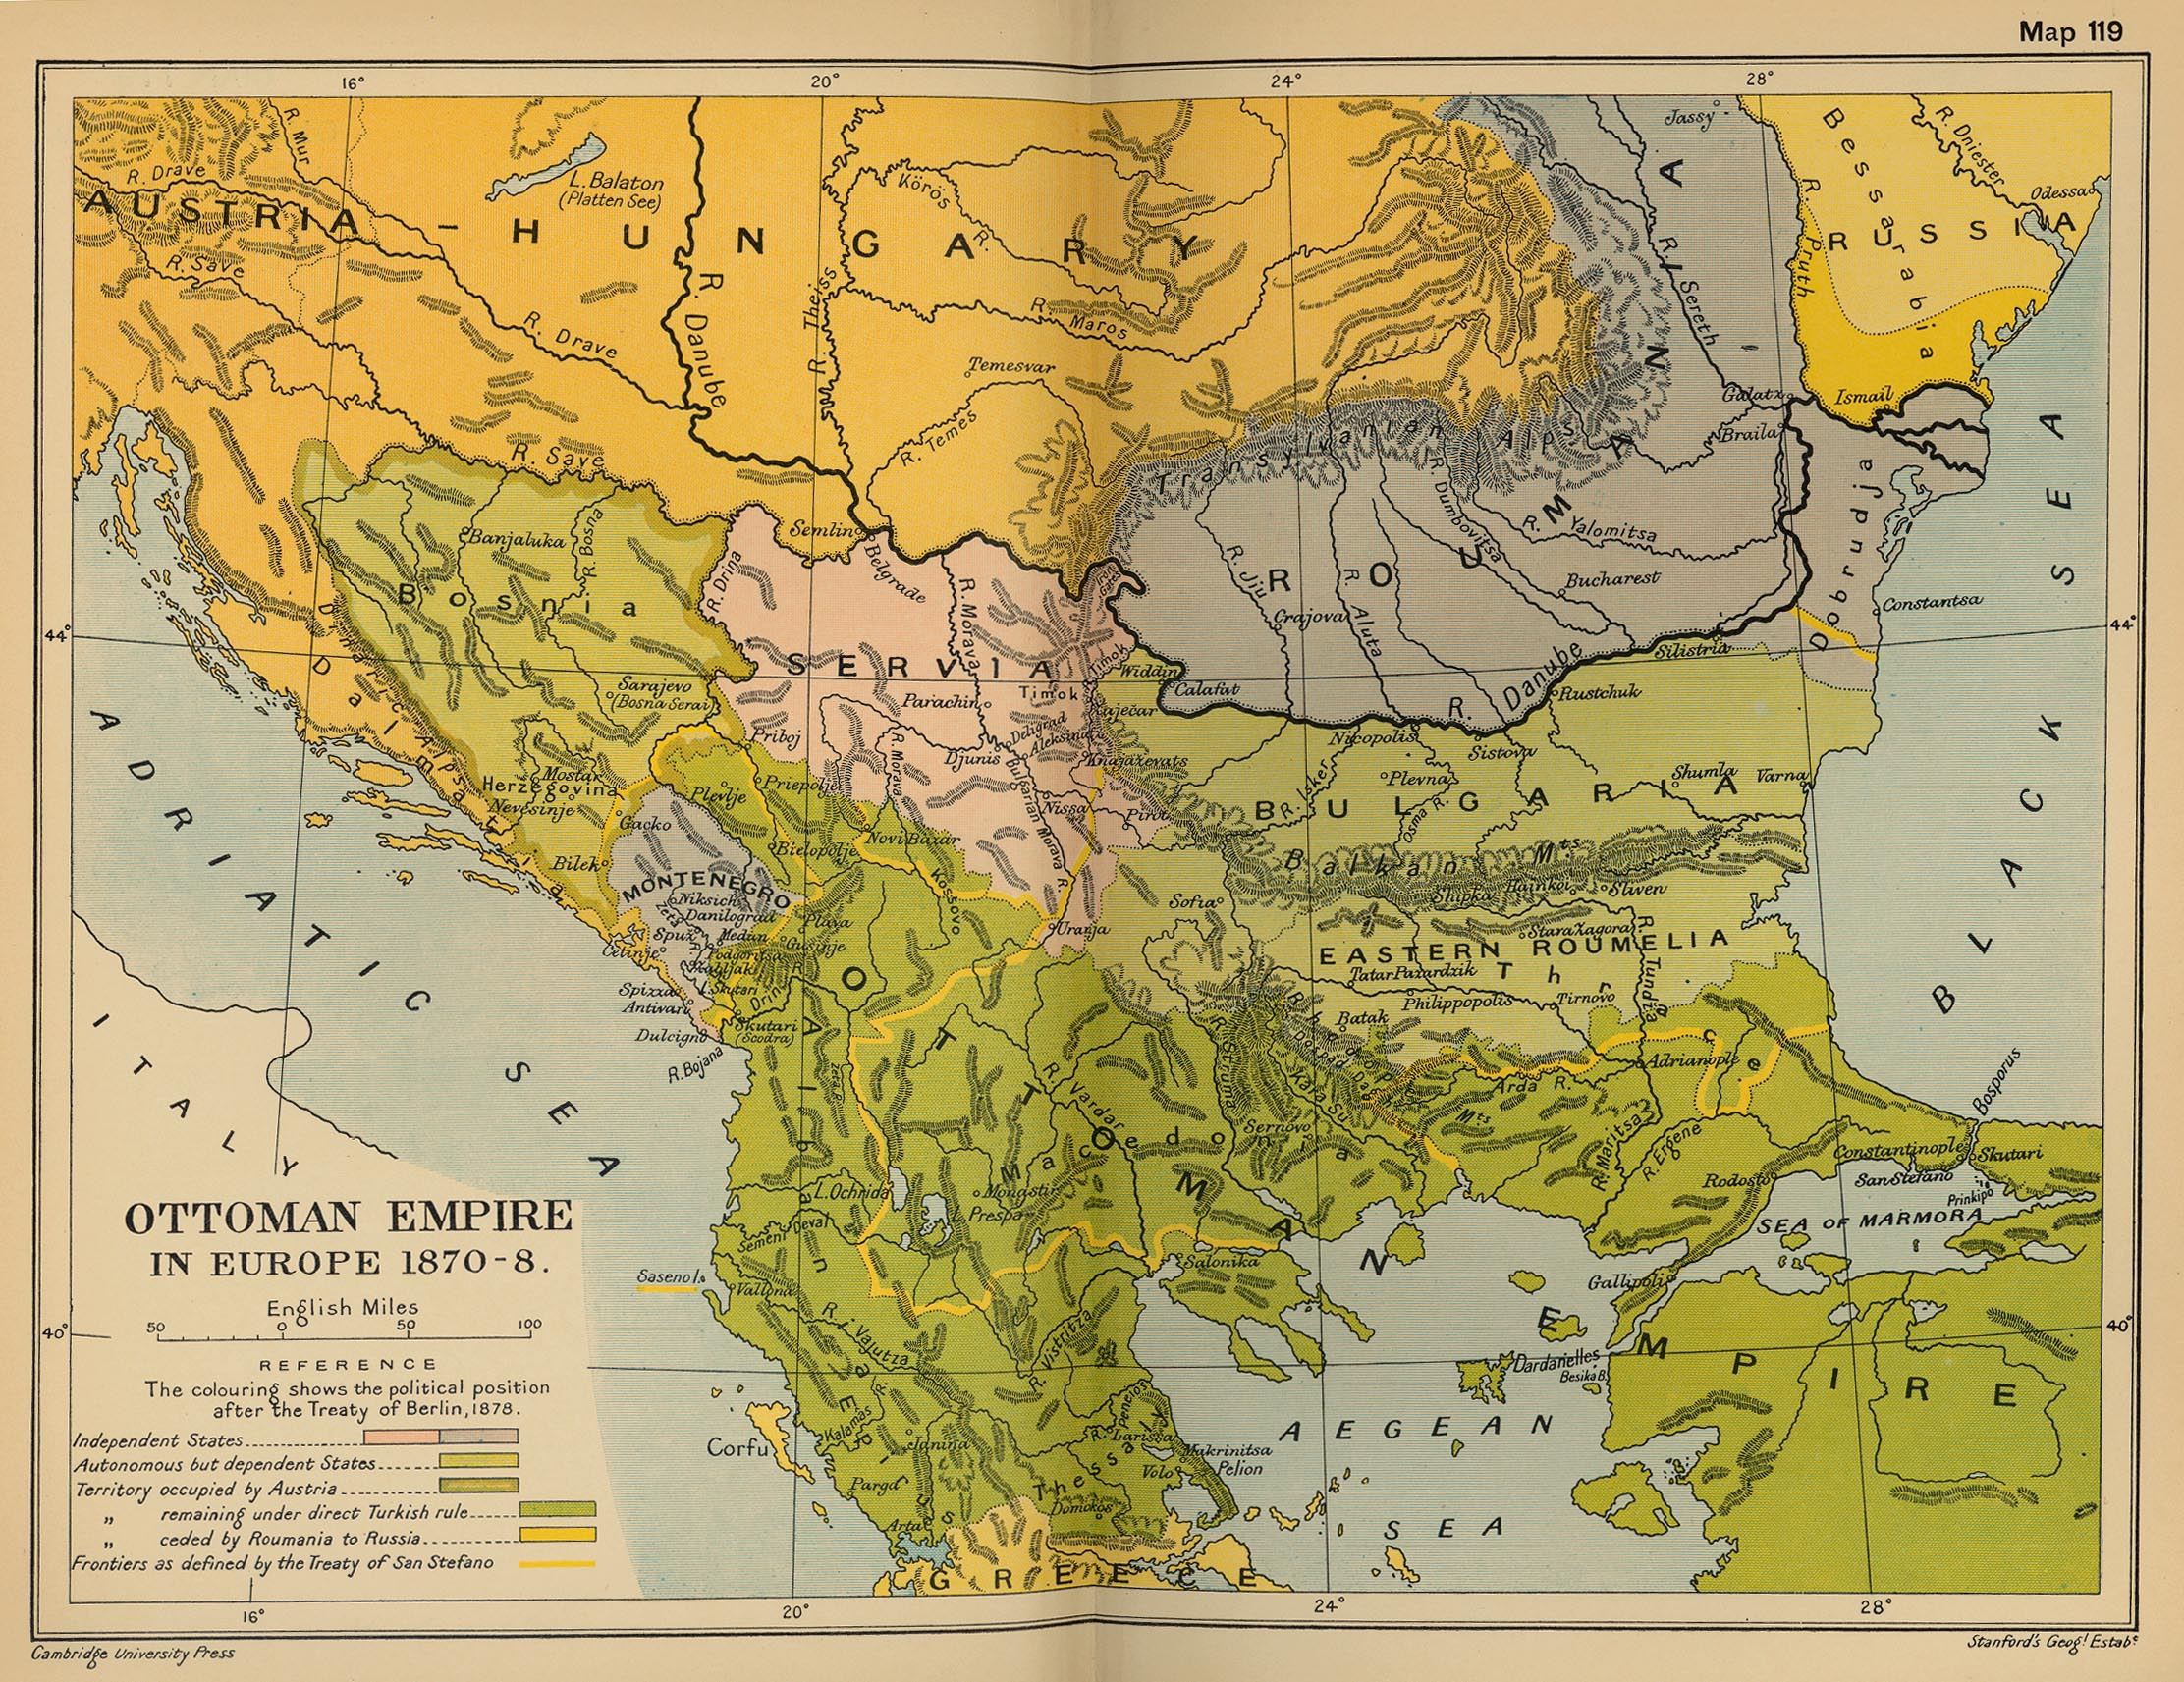 The Ottoman Empire in Europe 1870-1878